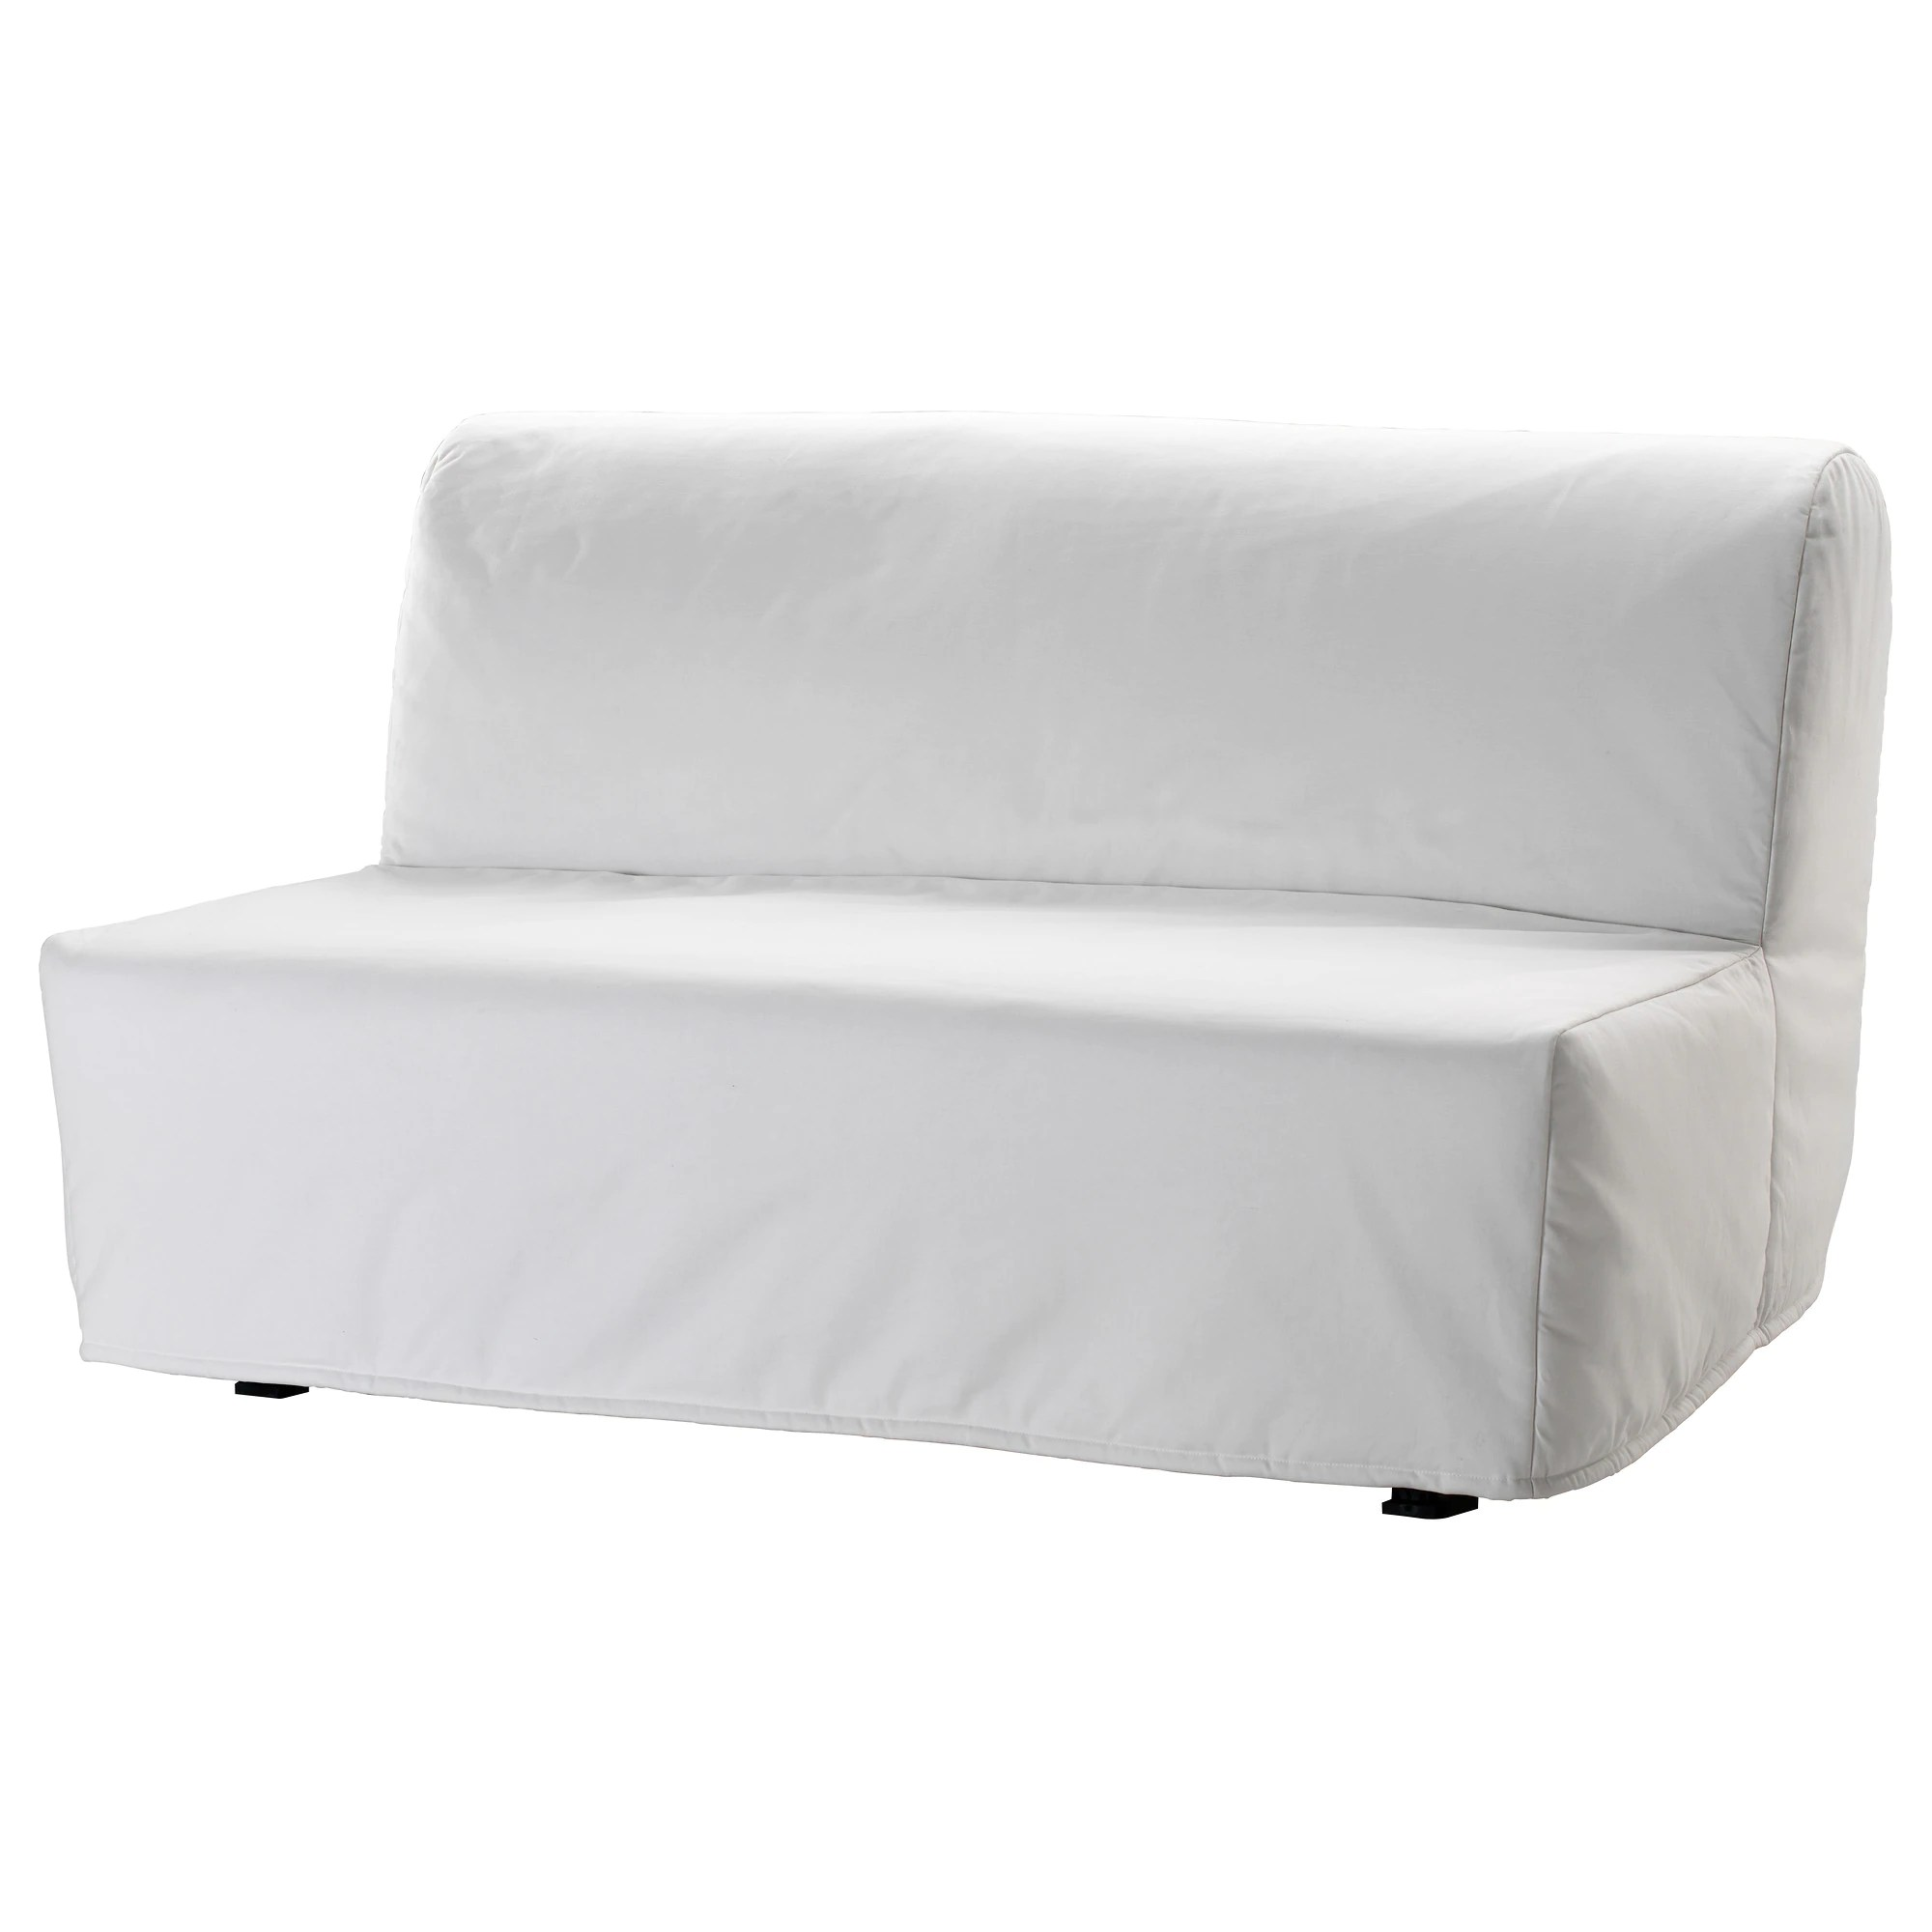 Couches In Ikea Sleeper Sofa Lycksele LÖvÅs Ransta White